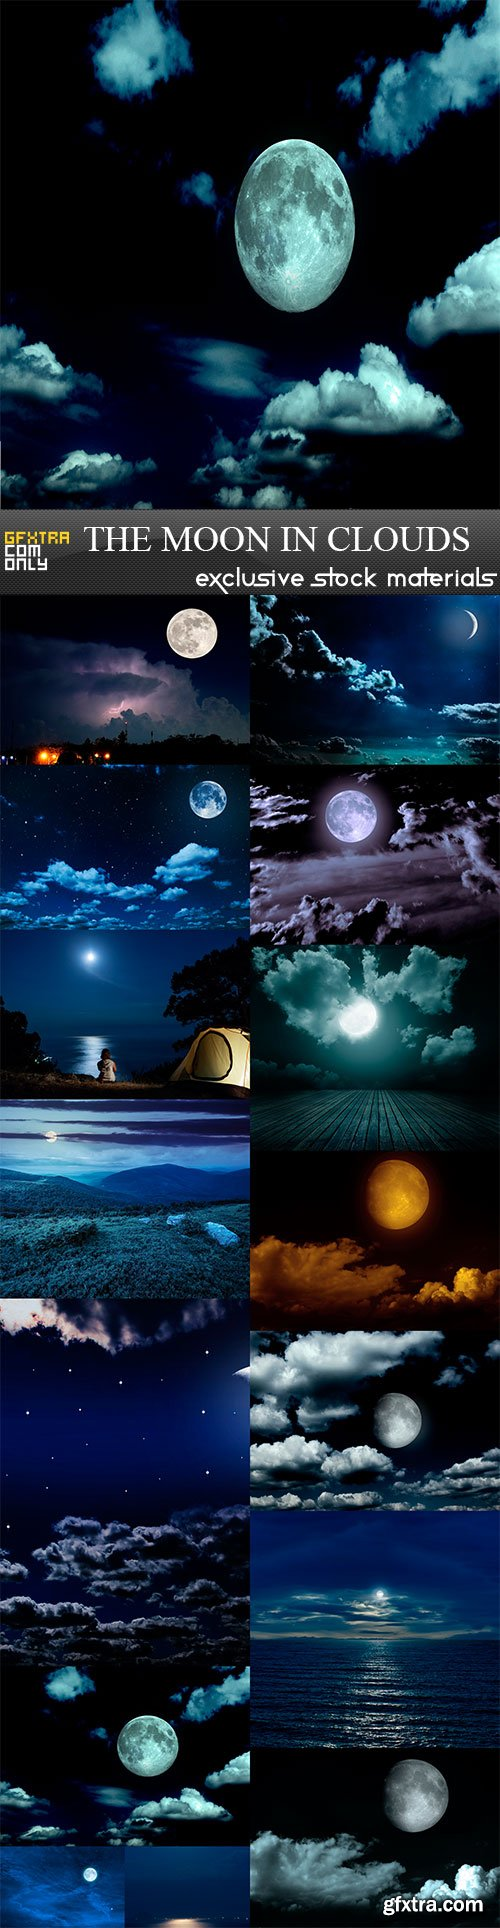 The moon in the night sky in clouds, 15 x UHQ JPEG